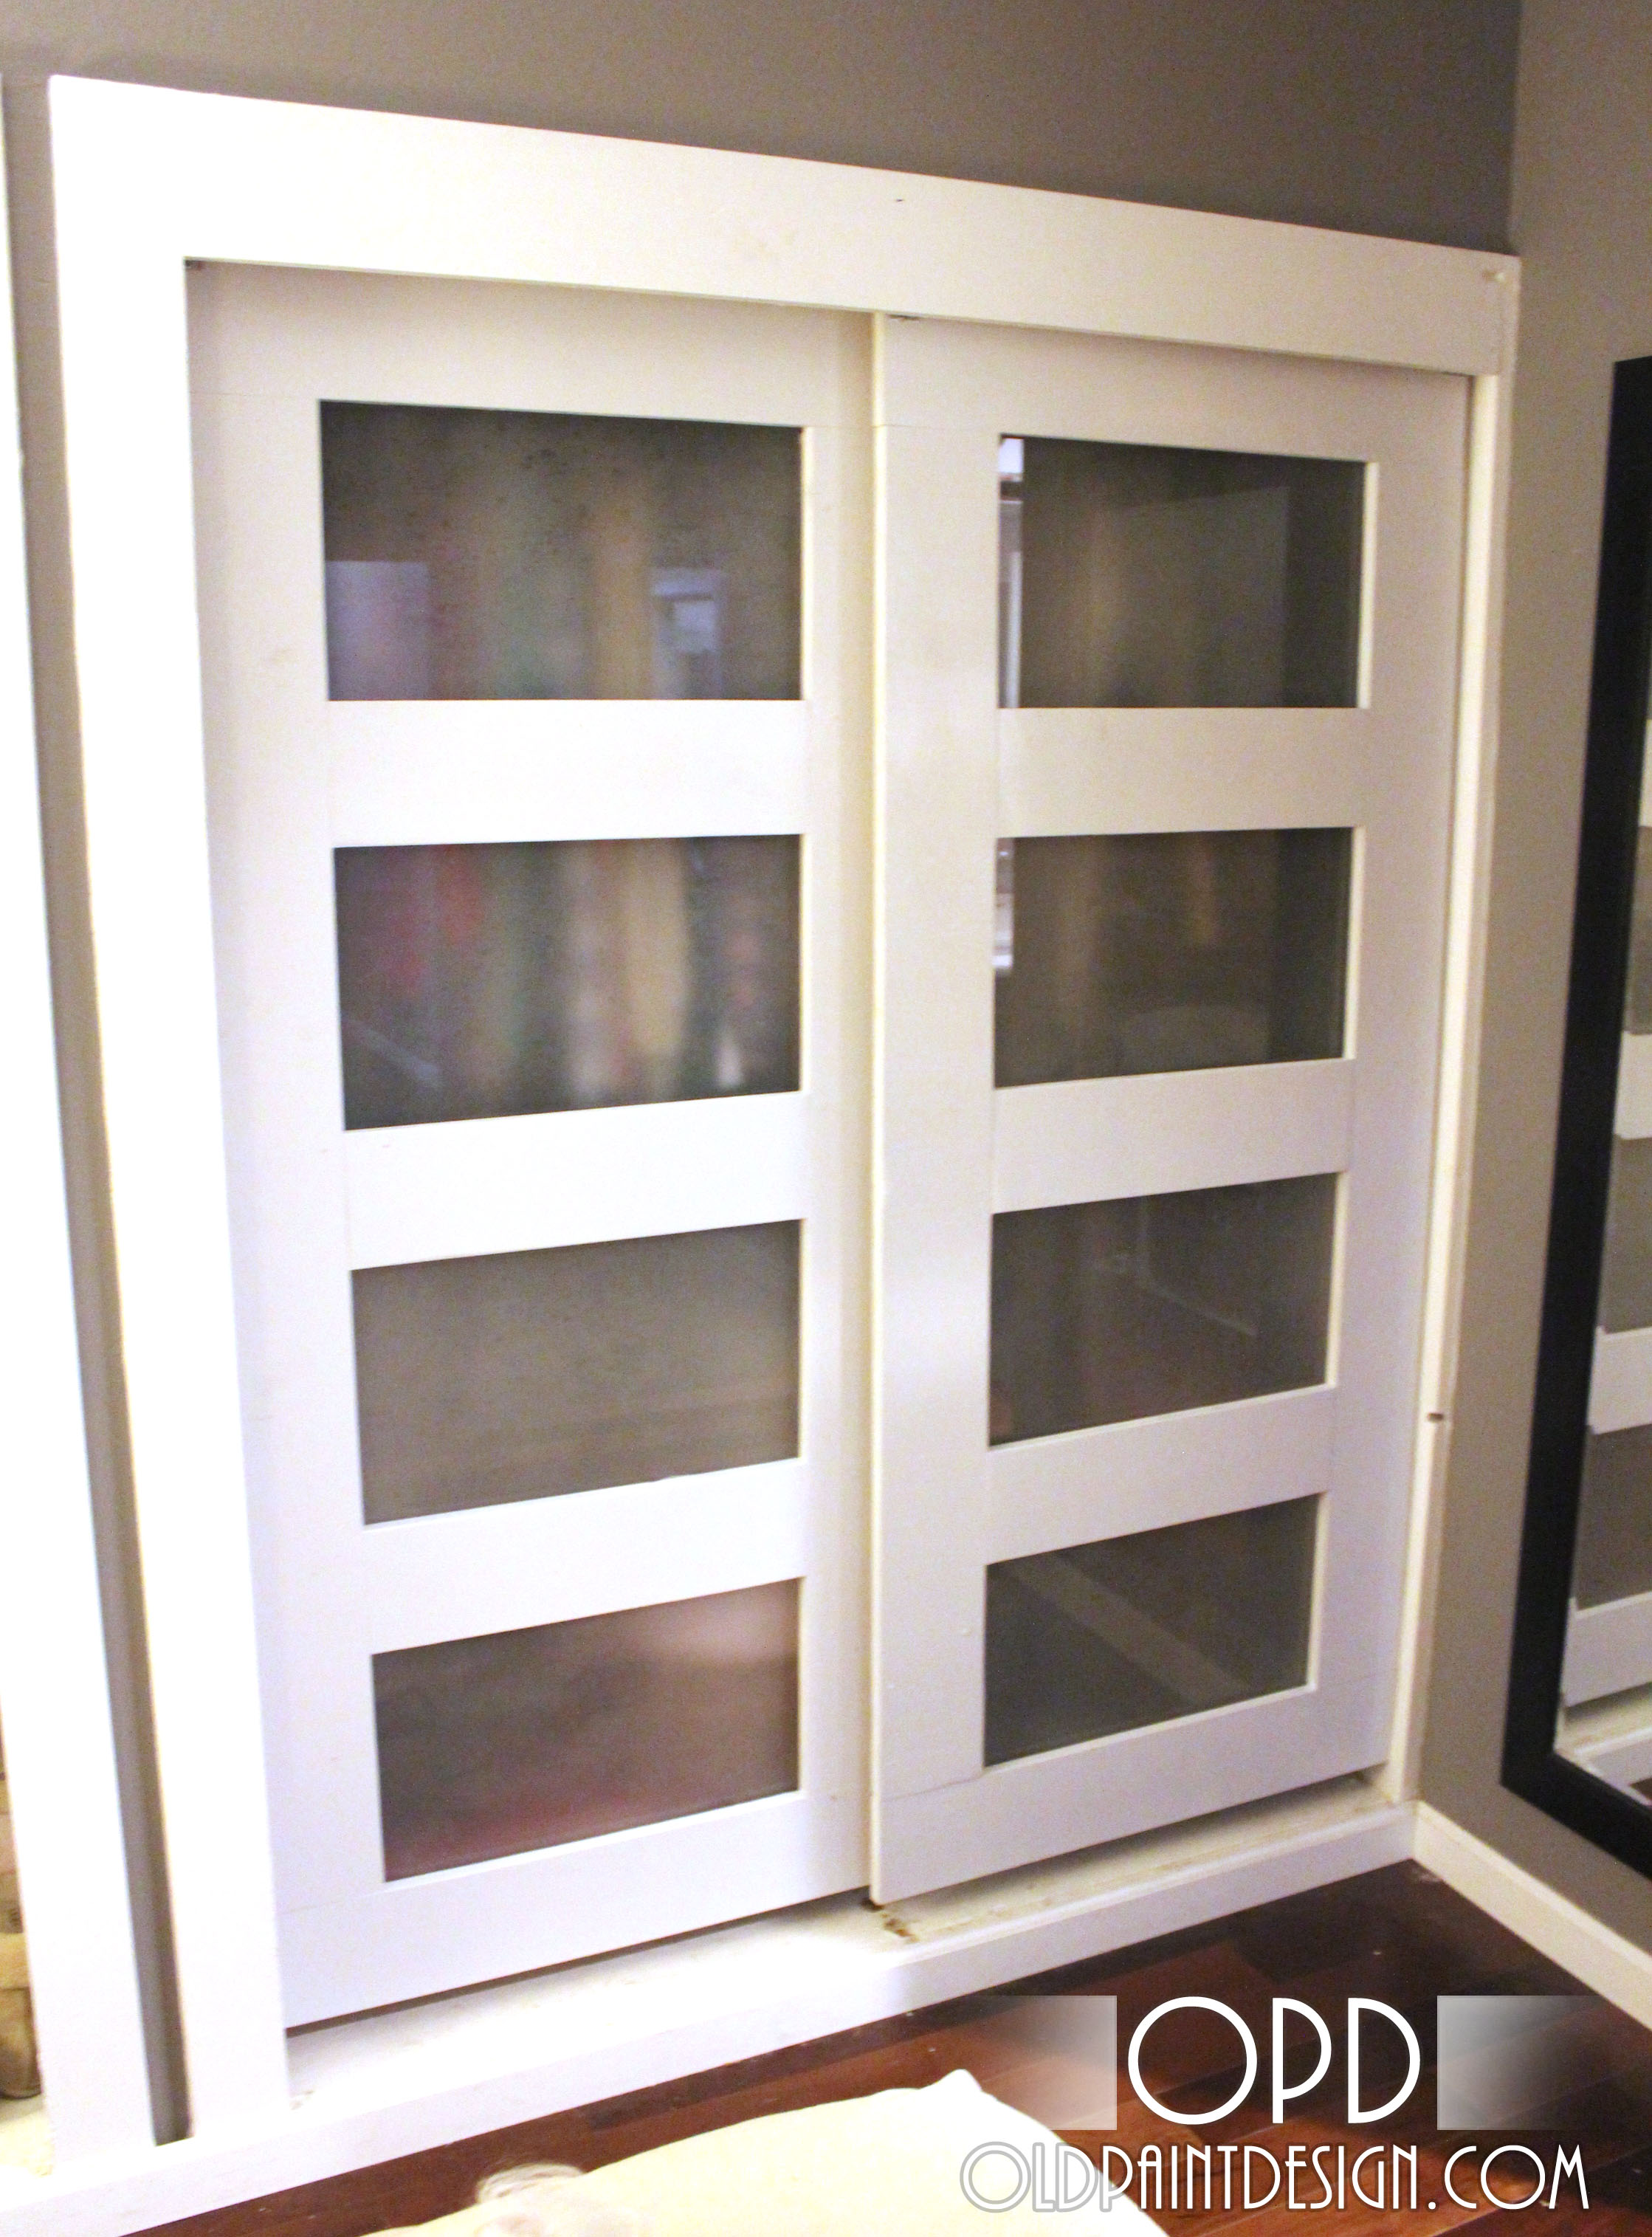 Sliding cabinet doors ana white    Bypassing Cabinet Doors - DIY Projects NWSNSKF